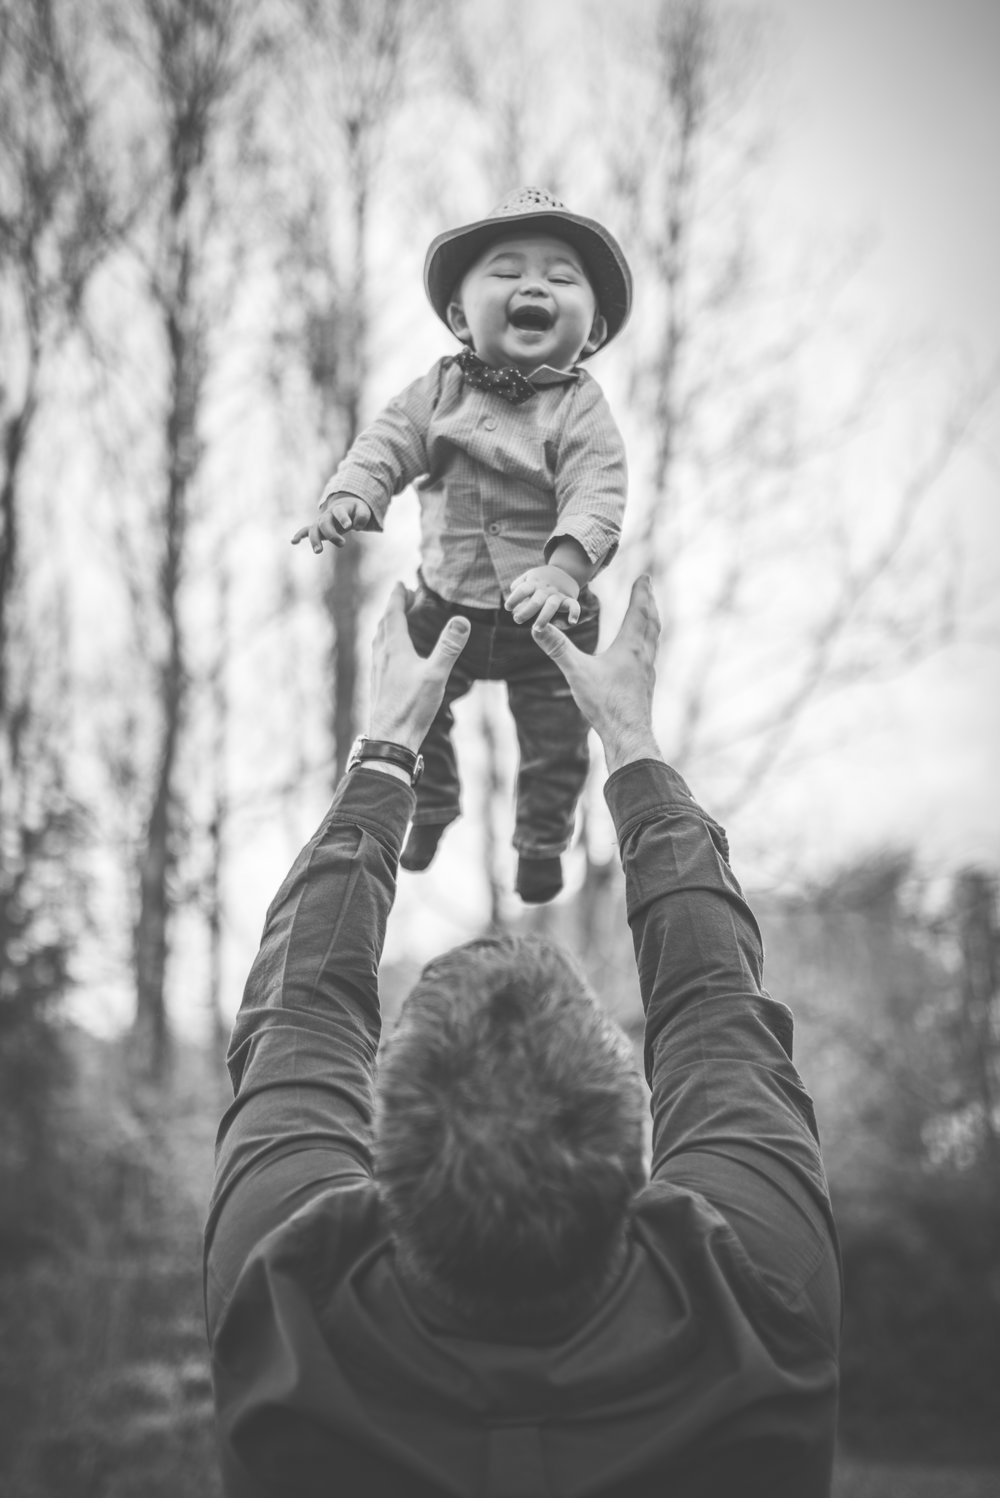 Father and son fun BW Family photography outdoor Stavanger Familie fotografering